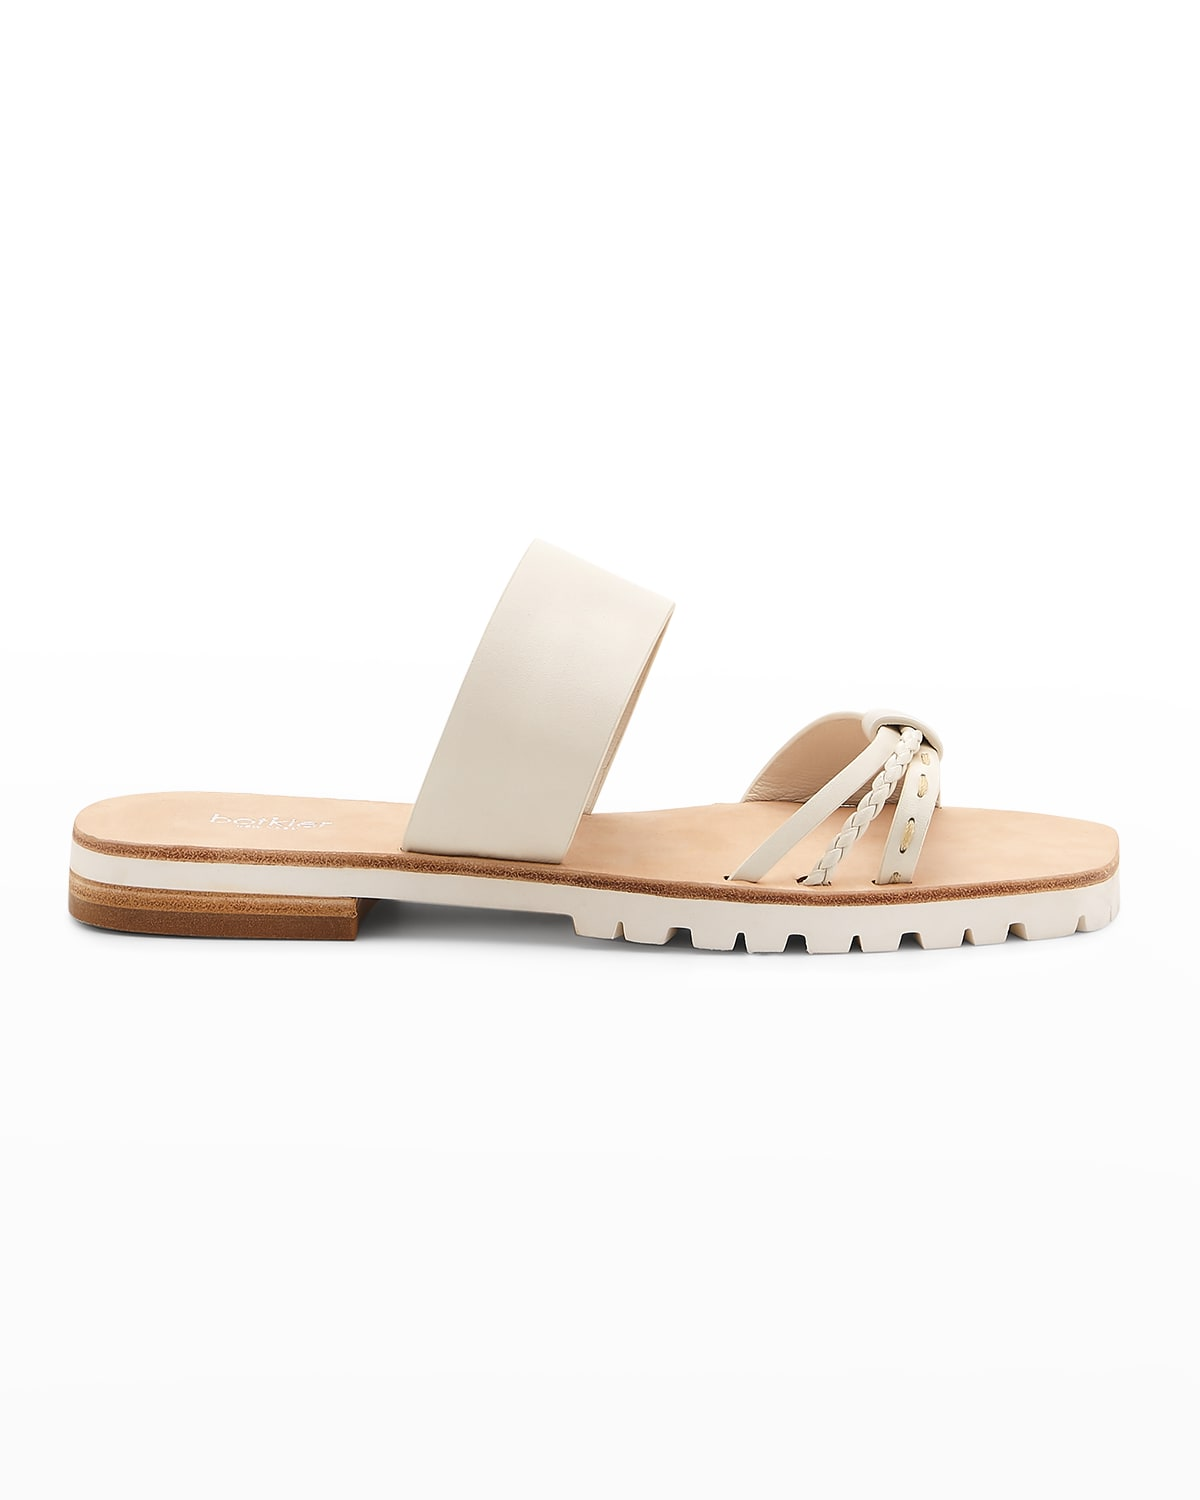 Mindy Braided Leather Flat Sandals